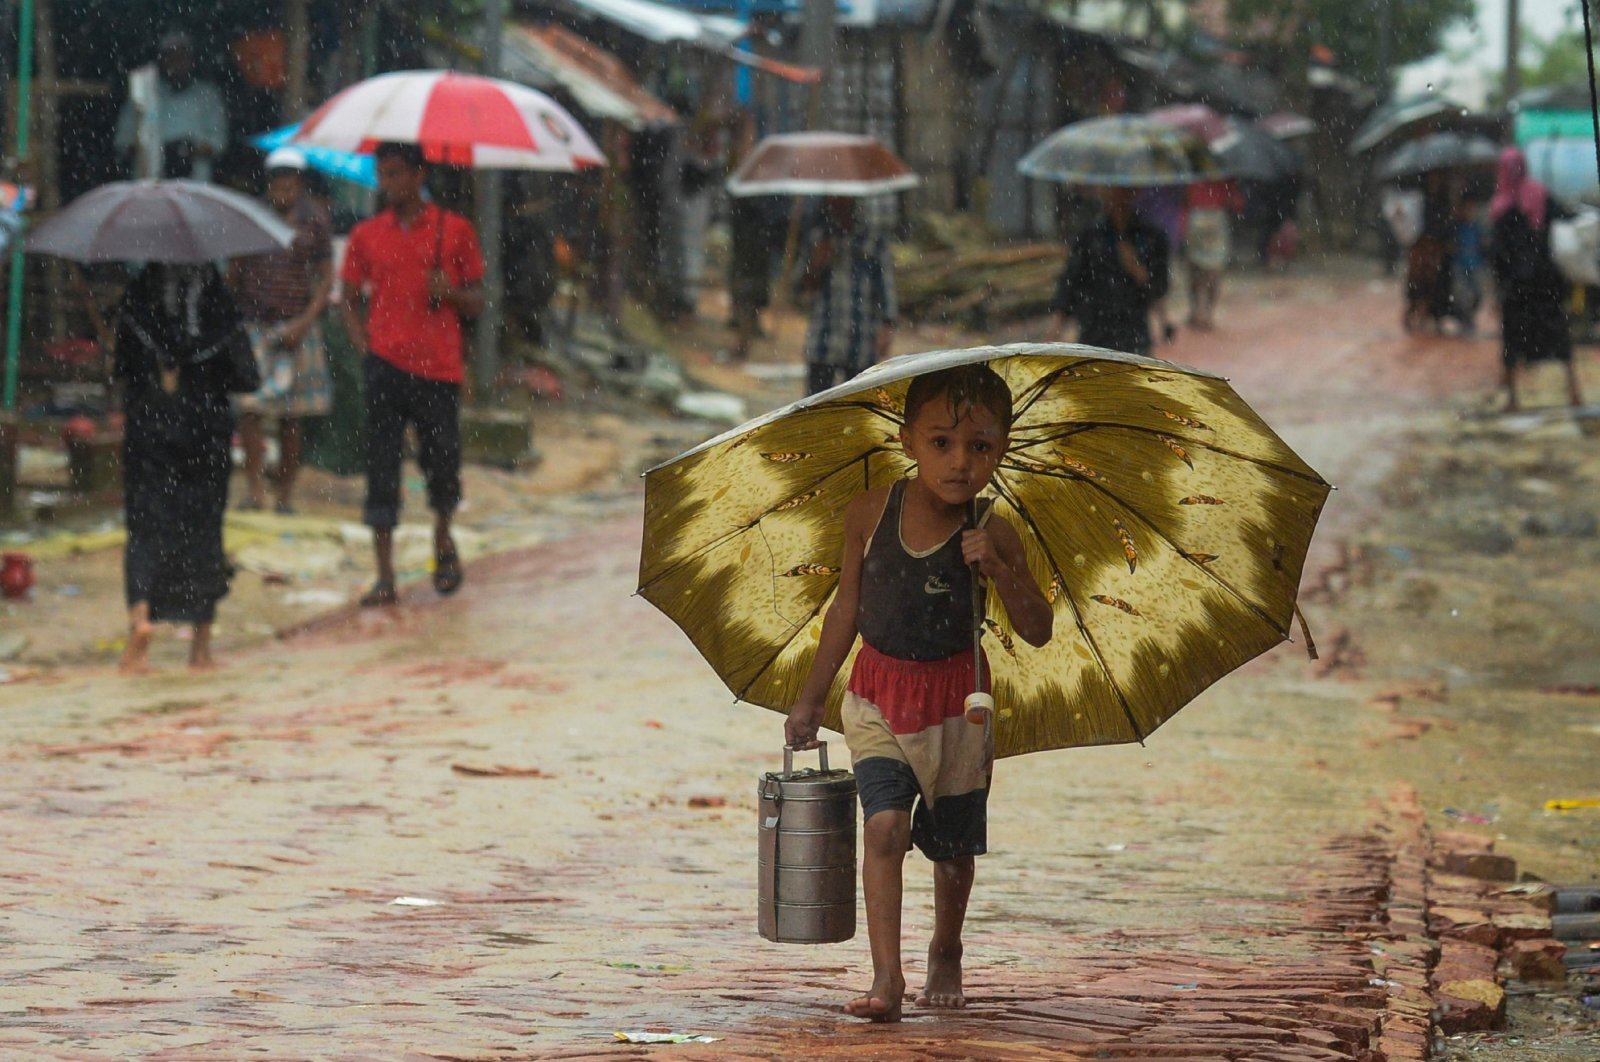 A Rohingya refugee boy shelters under an umbrella as he makes his way during a monsoon rainfall at Kutupalong refugee camp in Ukhia, Cox's Bazar, southeastern Bangladesh, Sept. 12, 2019. (AFP)